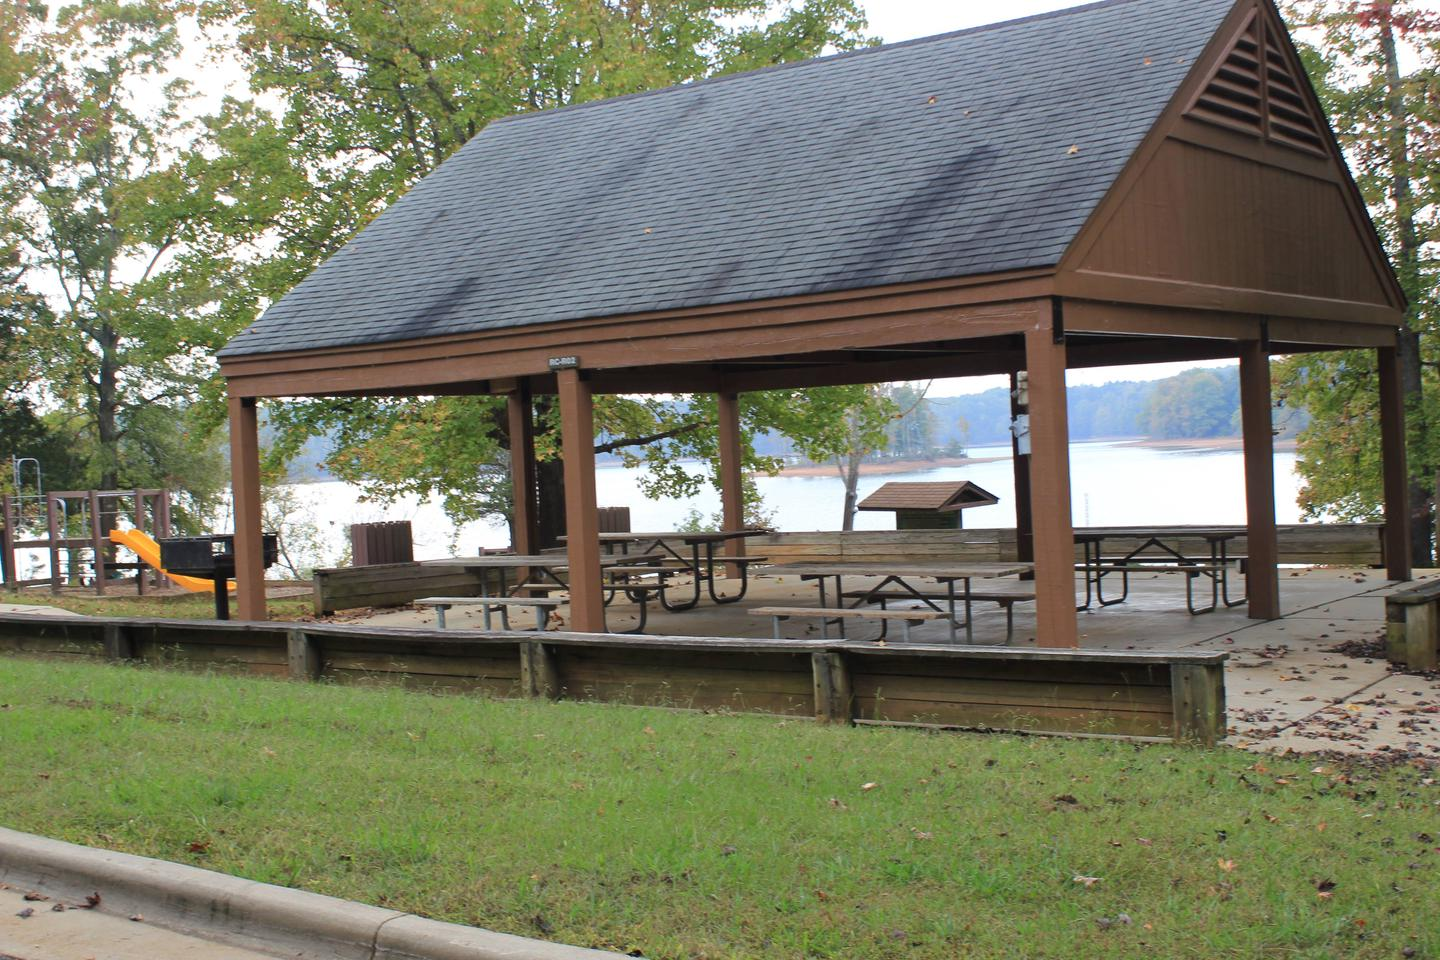 Rudd's Creek Campground ShelterWelcome to Rudd's Creek Campground! This picture is of the shelter located inside the campground. This shelter is only available to the campers. It is located near the swimming area that is inside the campground.